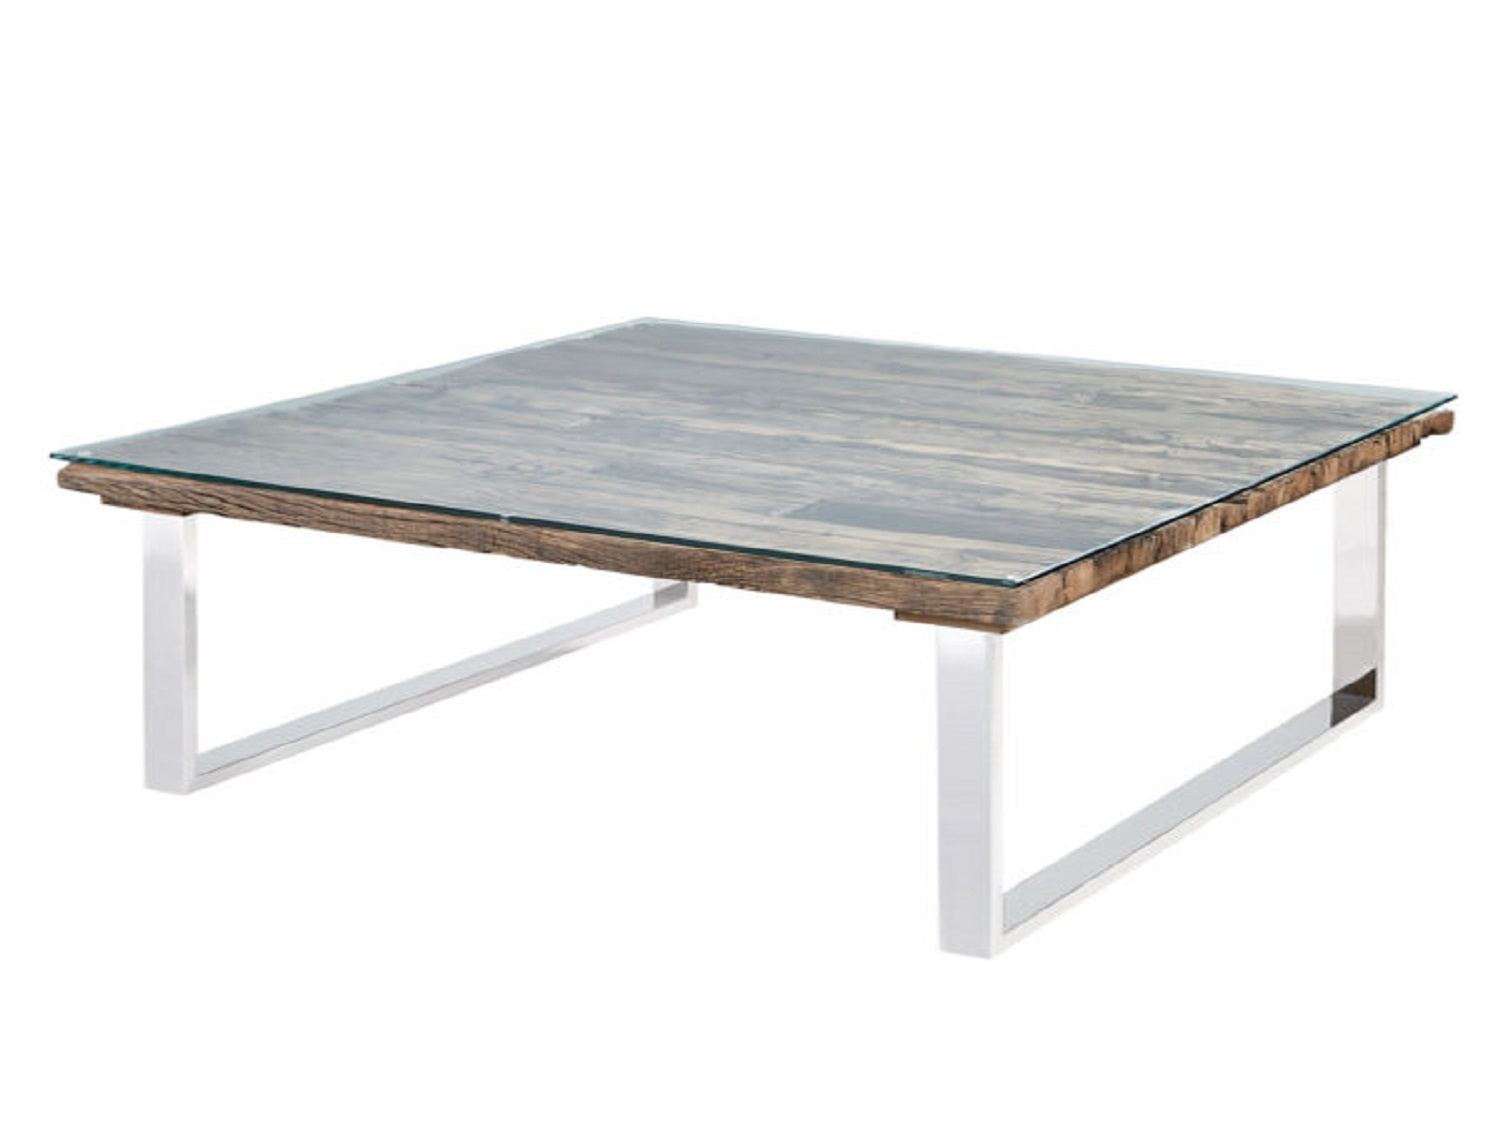 Railwood Square Coffee Table, CCXL029, Coffee Table by Midha Furniture to Brampton, Mississauga, Etobicoke, Toronto, Scraborough, Caledon, Oakville, Markham, Ajax, Pickering, Oshawa, Richmondhill, Kitchener, Hamilton and GTA area